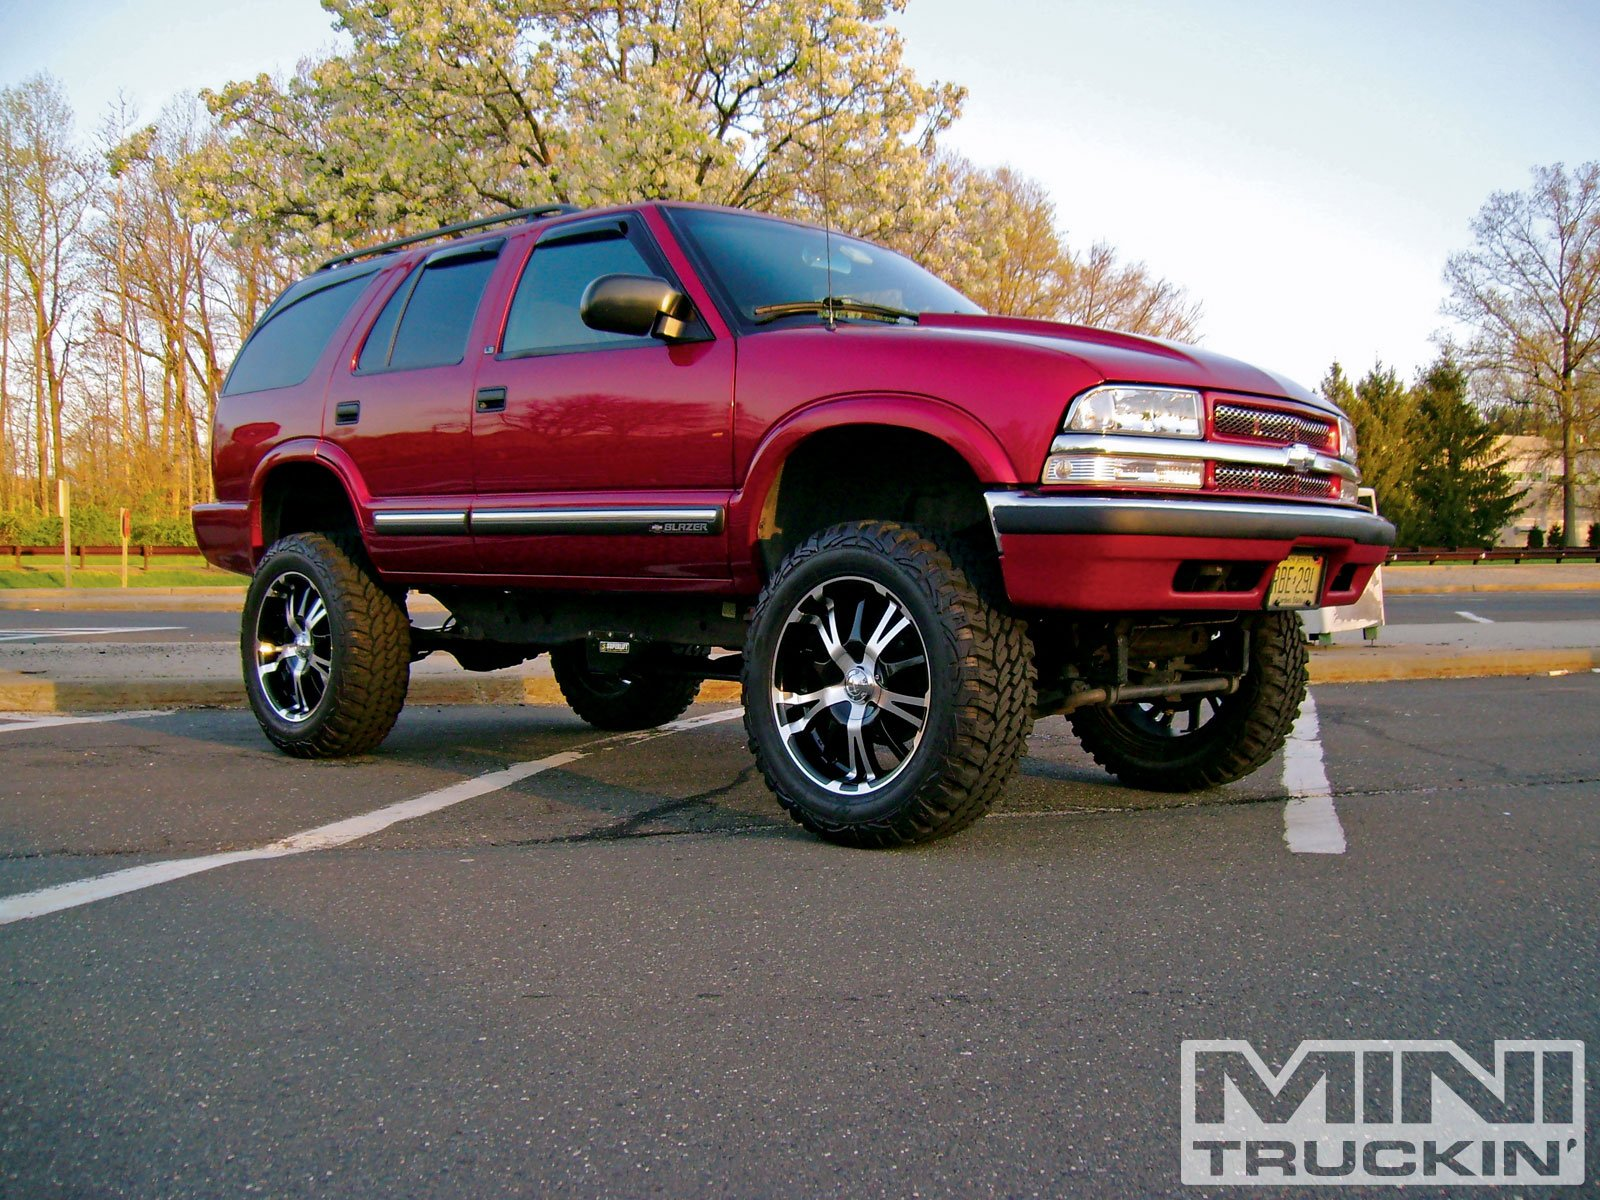 CHEVROLET BLAZER suv 4x4 truck wallpaper background 1600x1200